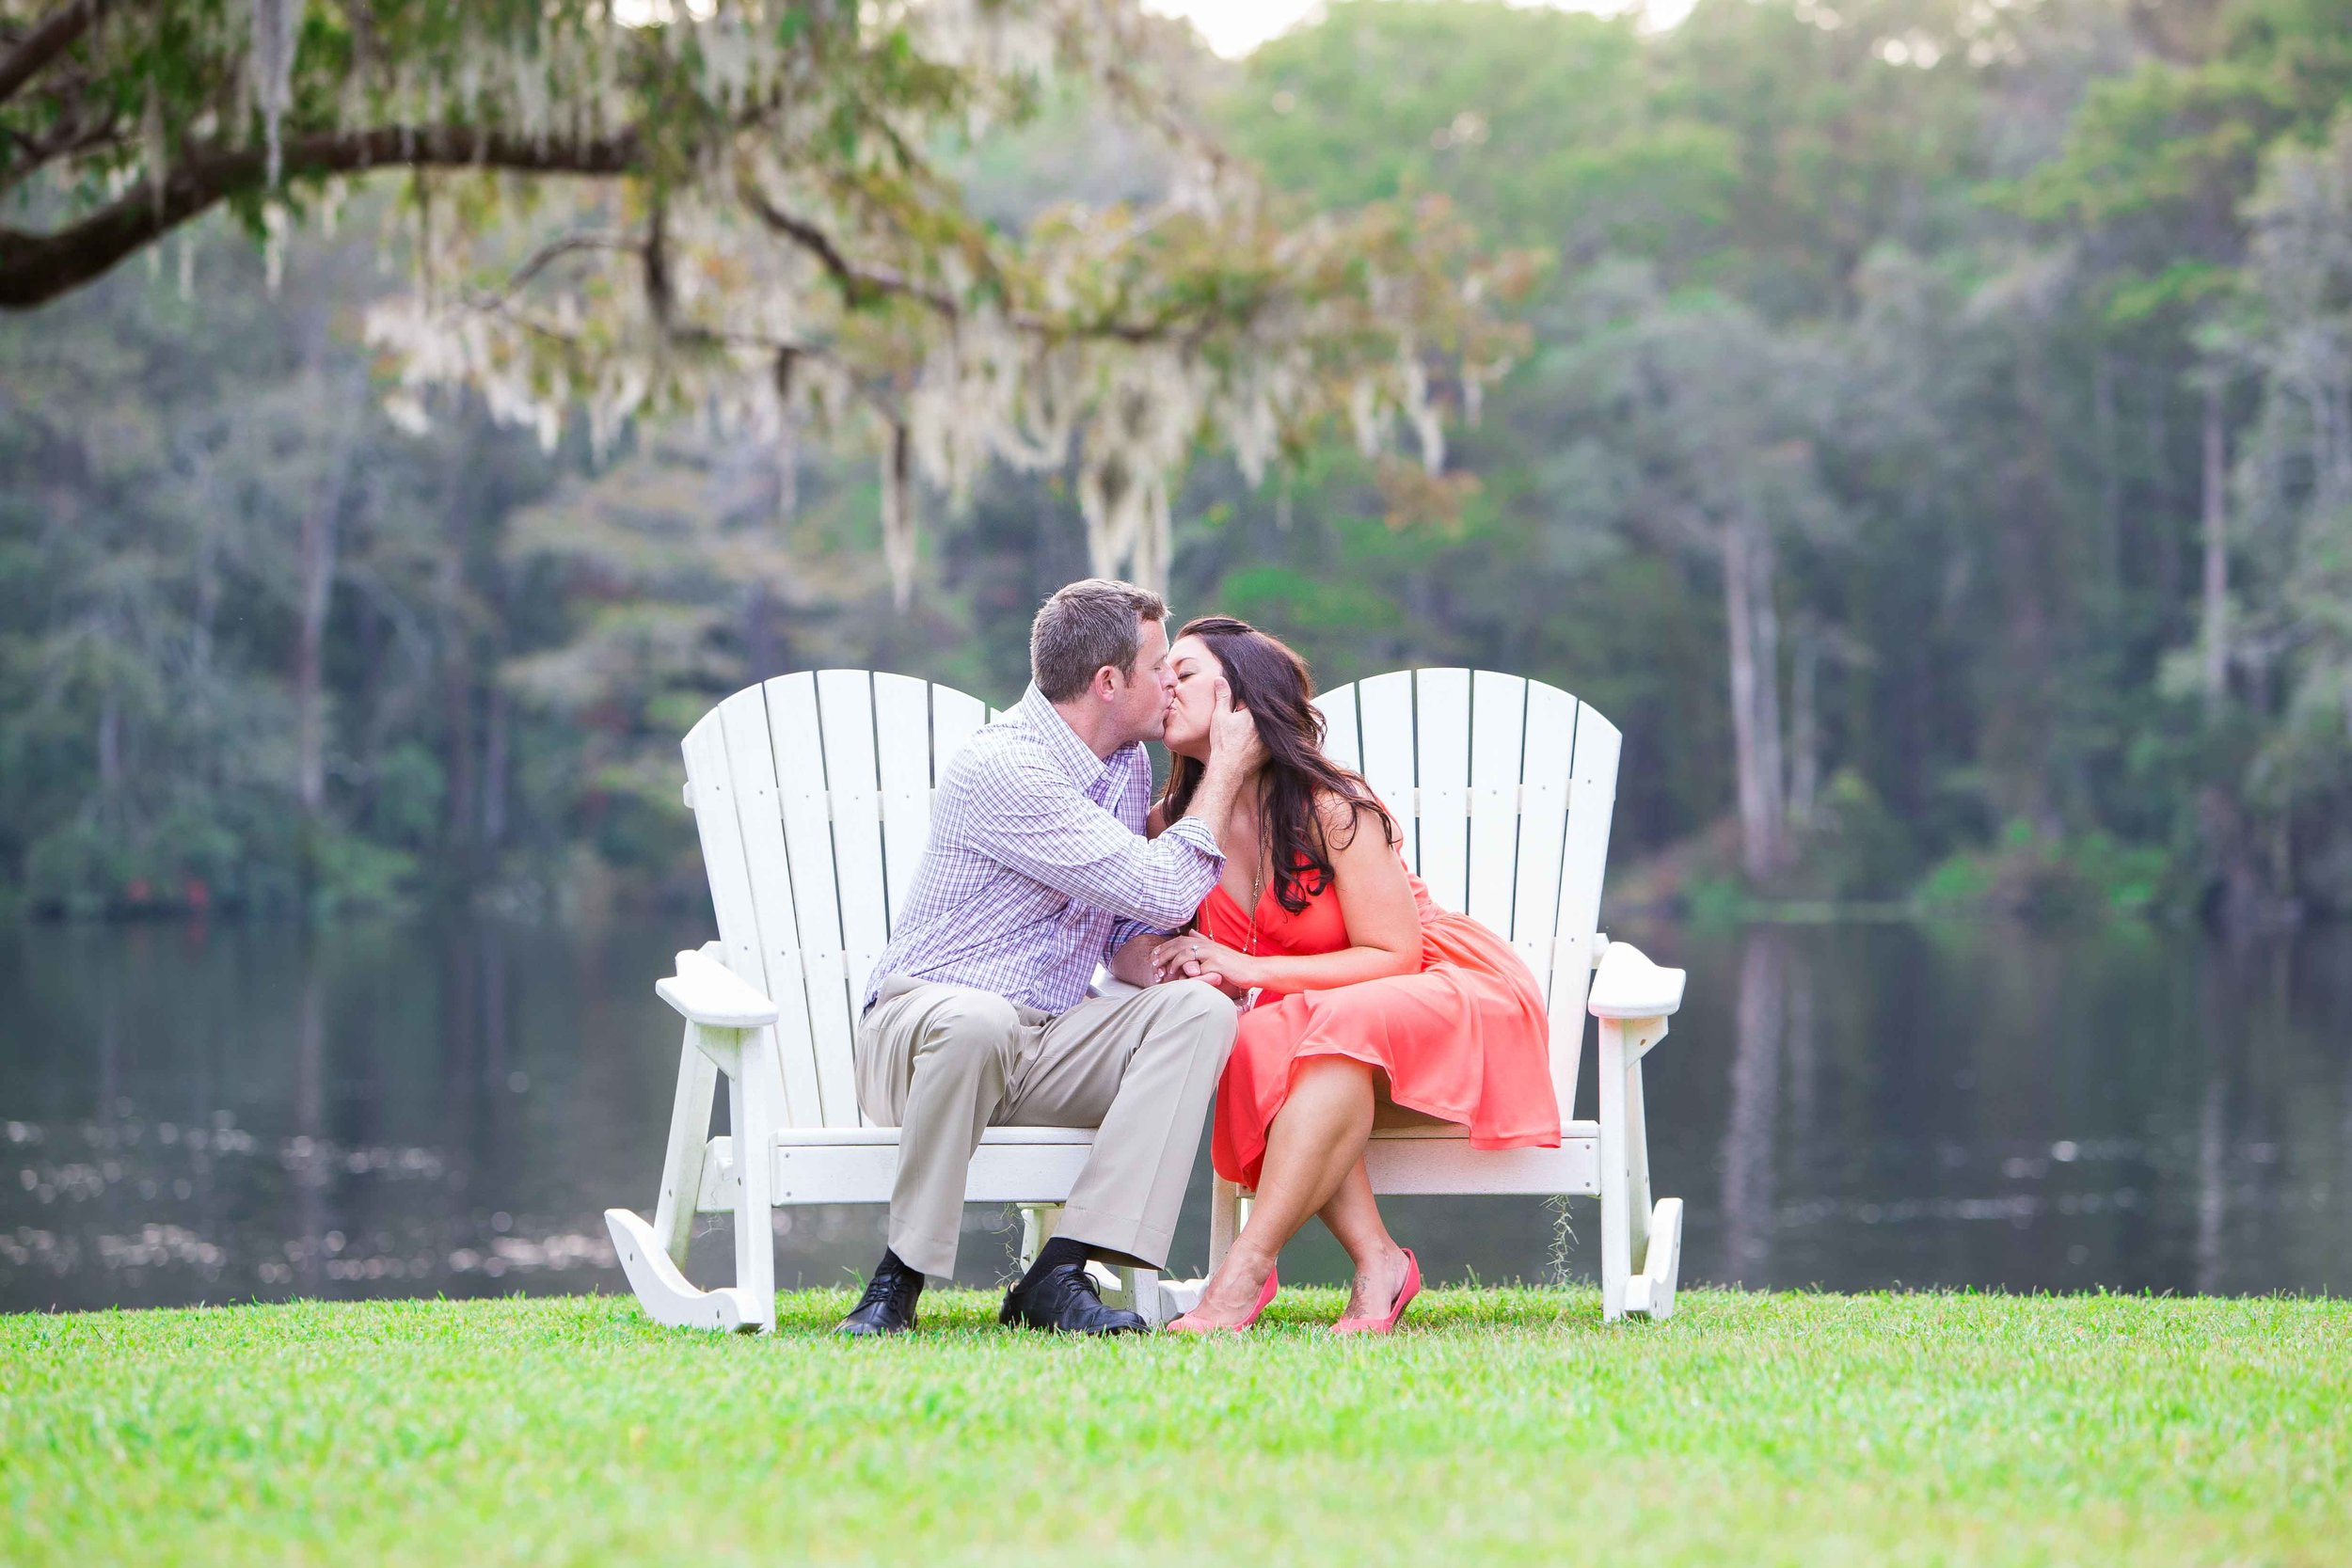 Myrtle beach engagement pictures ramona nicolae photography engagement photos-3.jpg